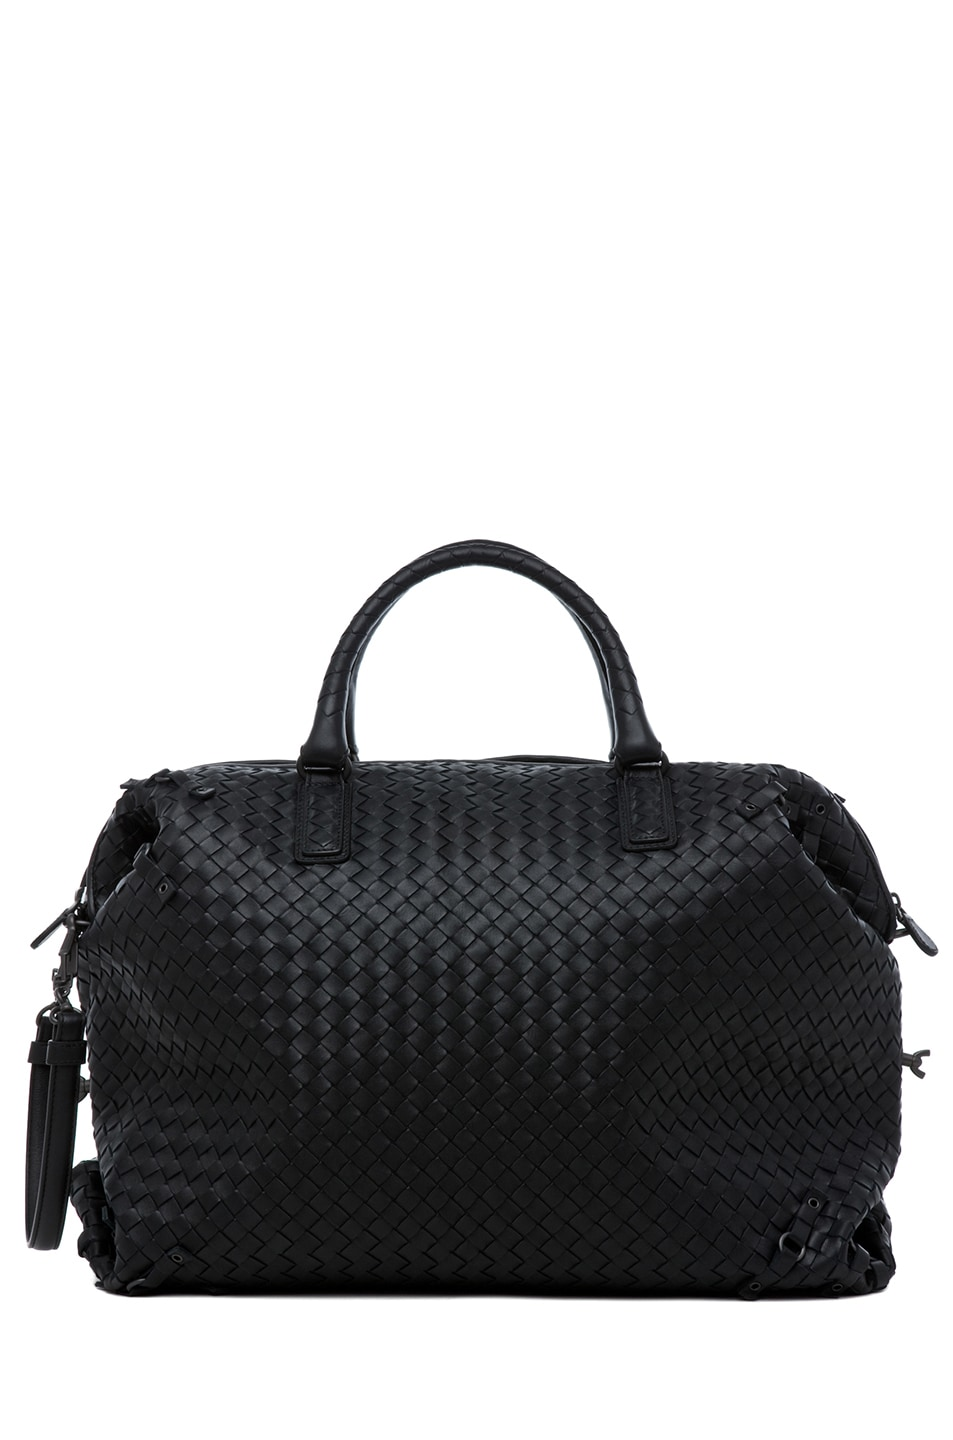 Image 1 of Bottega Veneta Maxi Tote in Nero